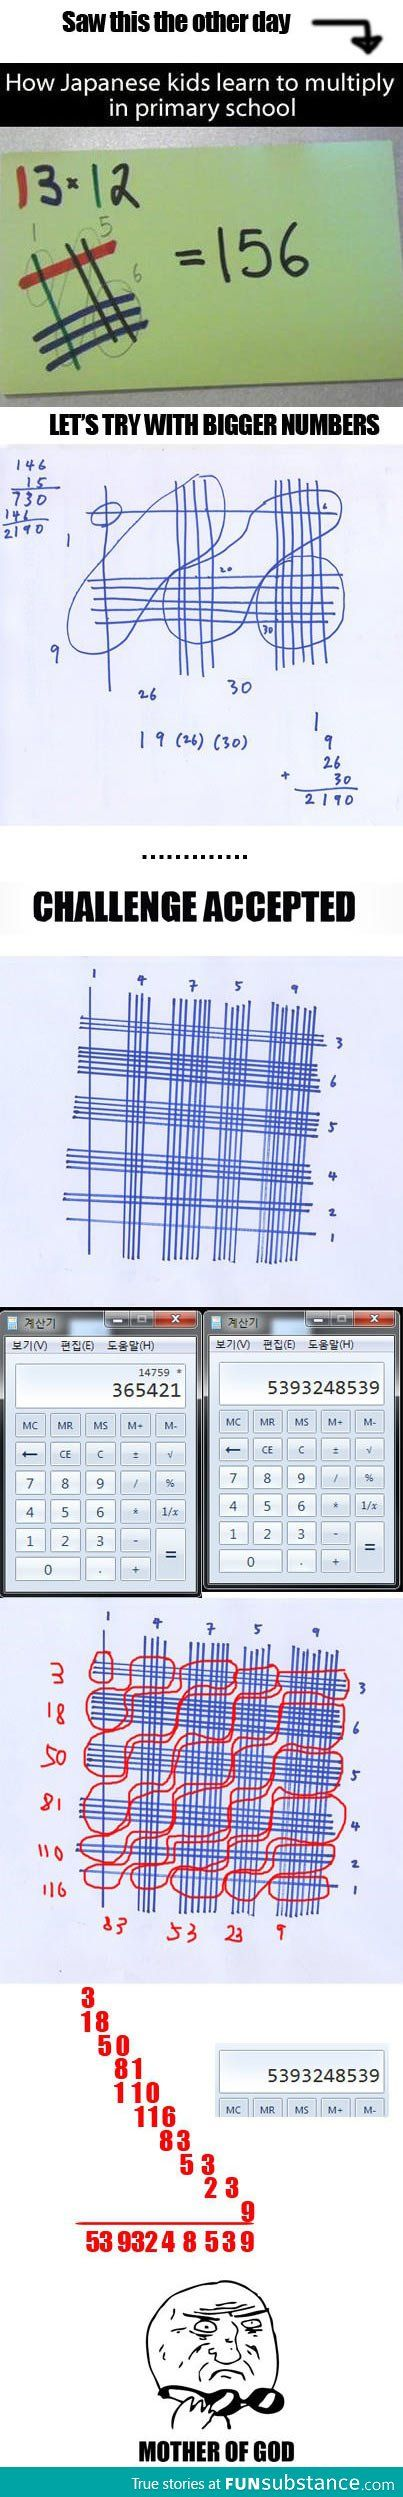 Japanese Math Multiplication Trick. Too tired to see for myself if this really works right now....